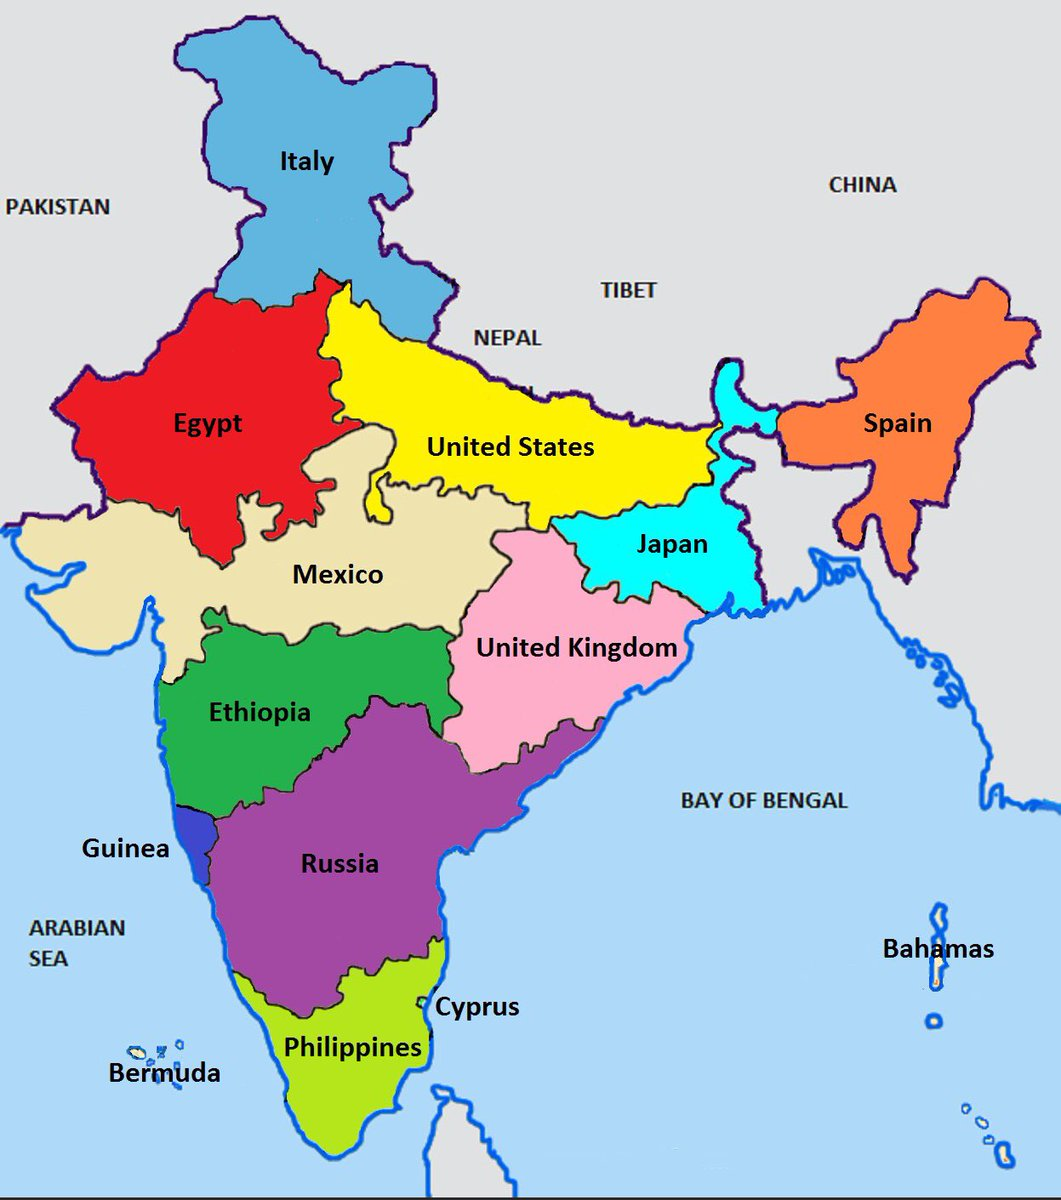 MAP BREAK  The population of India compared to other countries https://t.co/0rlQYAiRi5